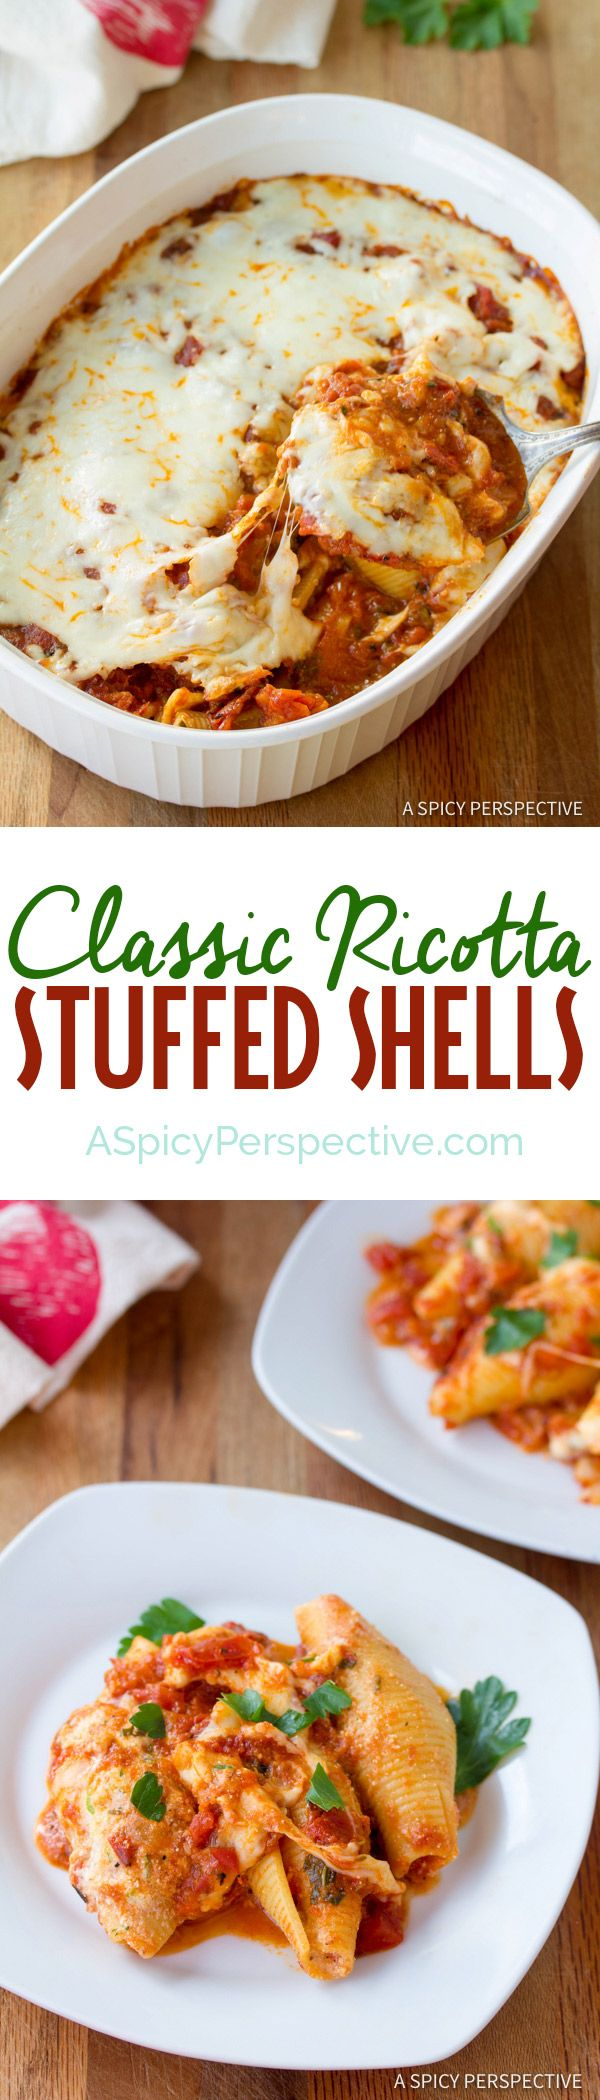 men online store Cozy Classic Ricotta Stuffed Shells   easy to make right at home